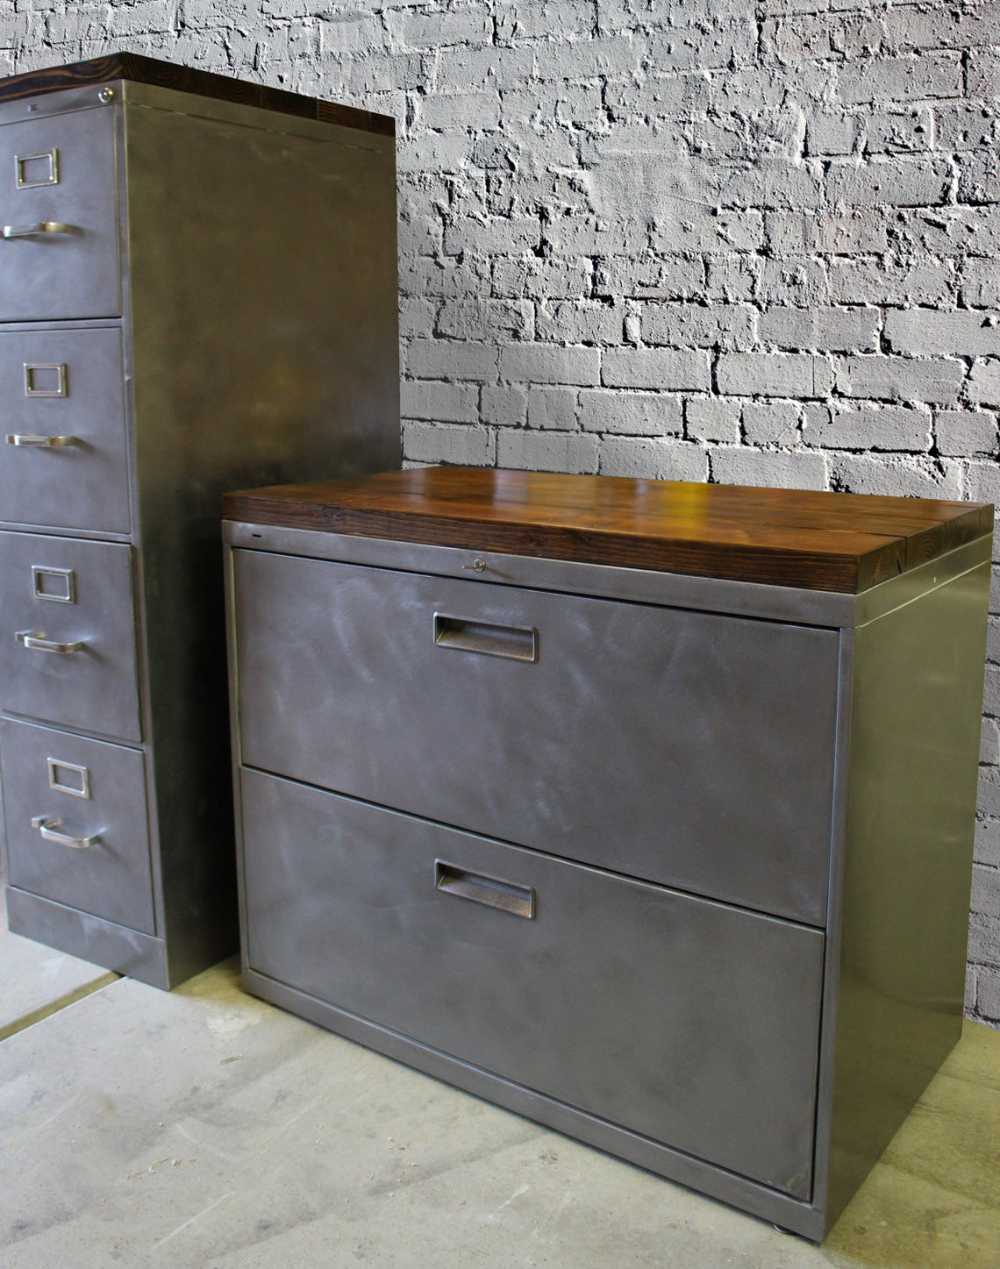 Refinished Metal Filing Cabinet 30 36 Or 42 Etsy In 2020 Office Storage Cabinets Rustic Office Storage Metal Filing Cabinet